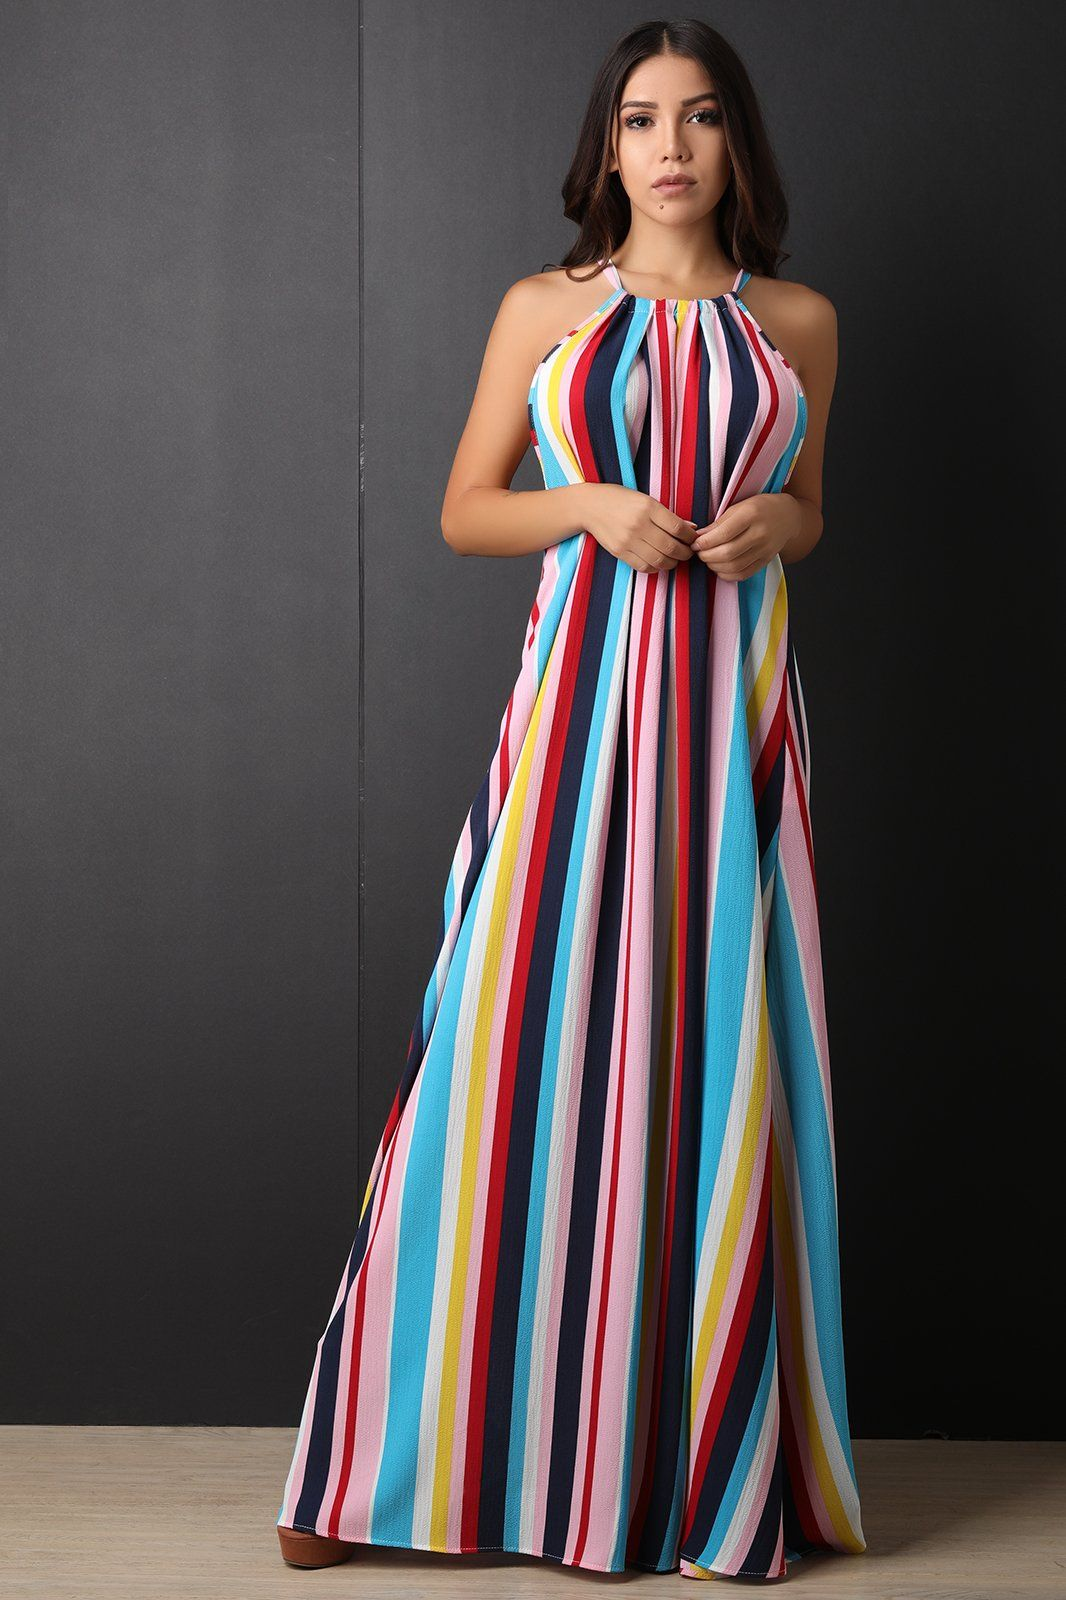 Colorful Vertical Striped Maxi Dress For Only 101 00 Fashionboutique Fashiontrends Dragonladyfashions F Maxi Dress Maxi Dress Cocktail Womens Maxi Dresses [ 1600 x 1066 Pixel ]